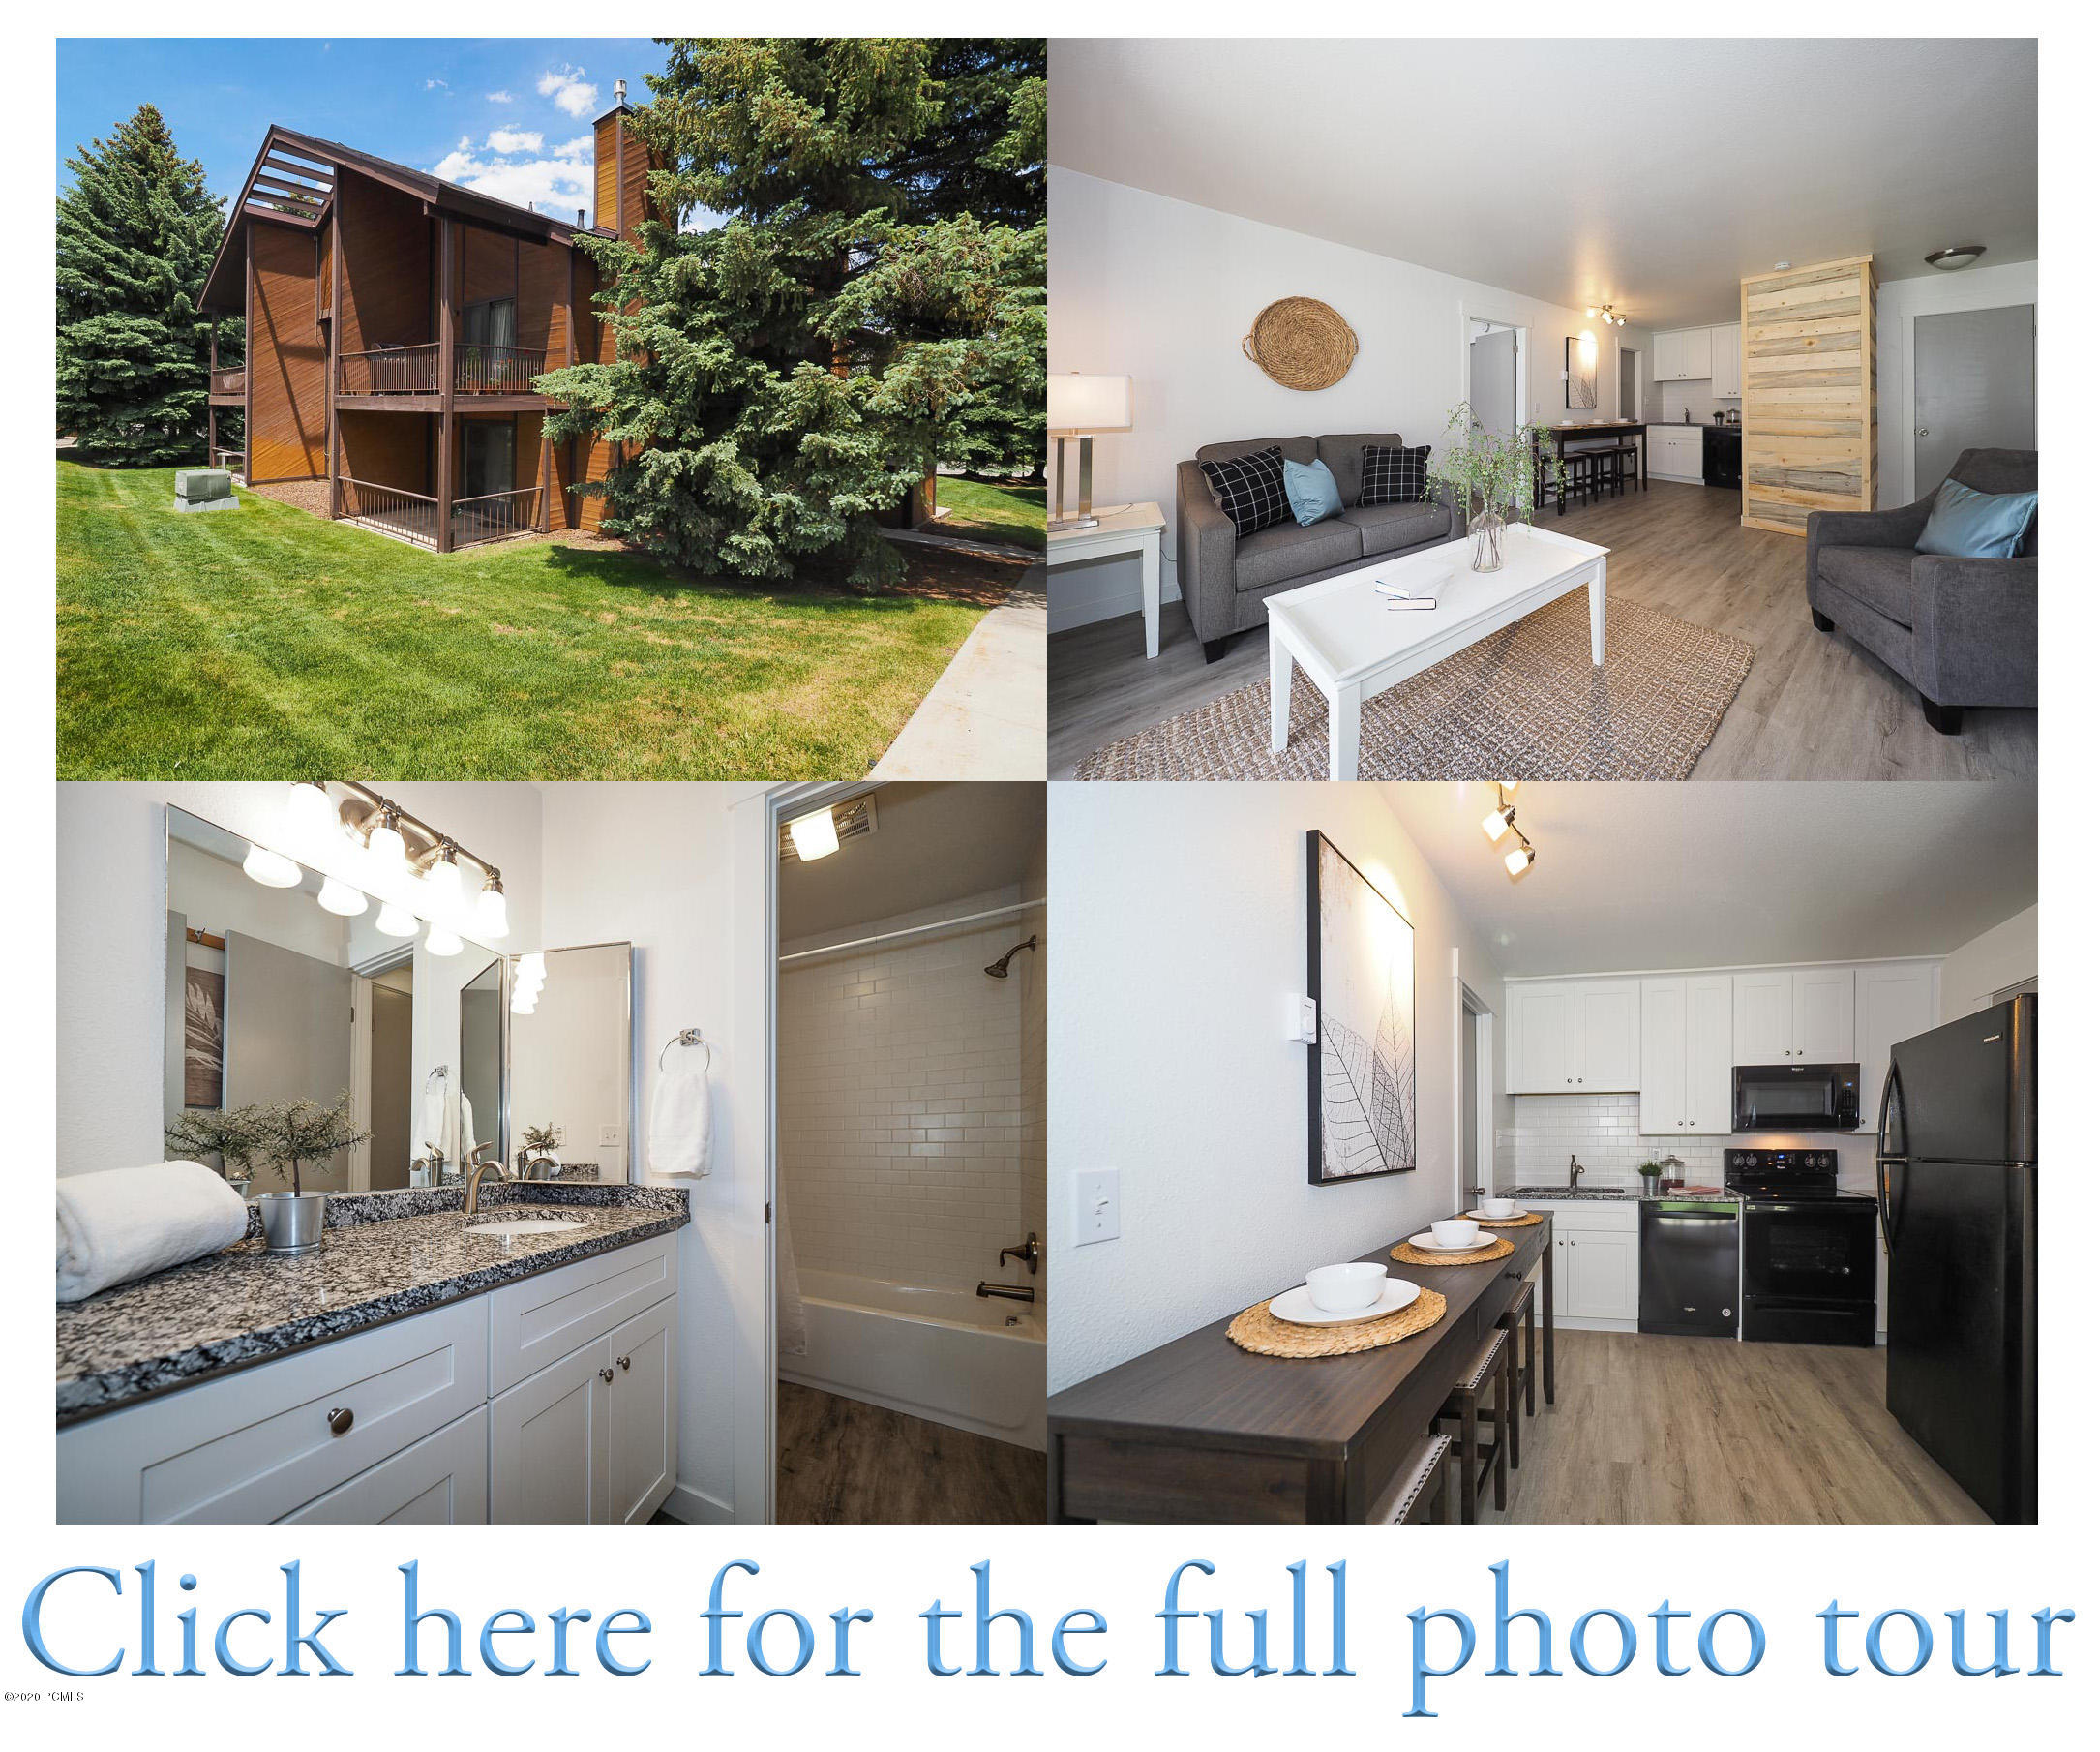 2025 Canyon Resort Dr Drive, Park City, Utah 84098, 1 Bedroom Bedrooms, ,1 BathroomBathrooms,Condominium,For Sale,Canyon Resort Dr,20190109112430415765000000